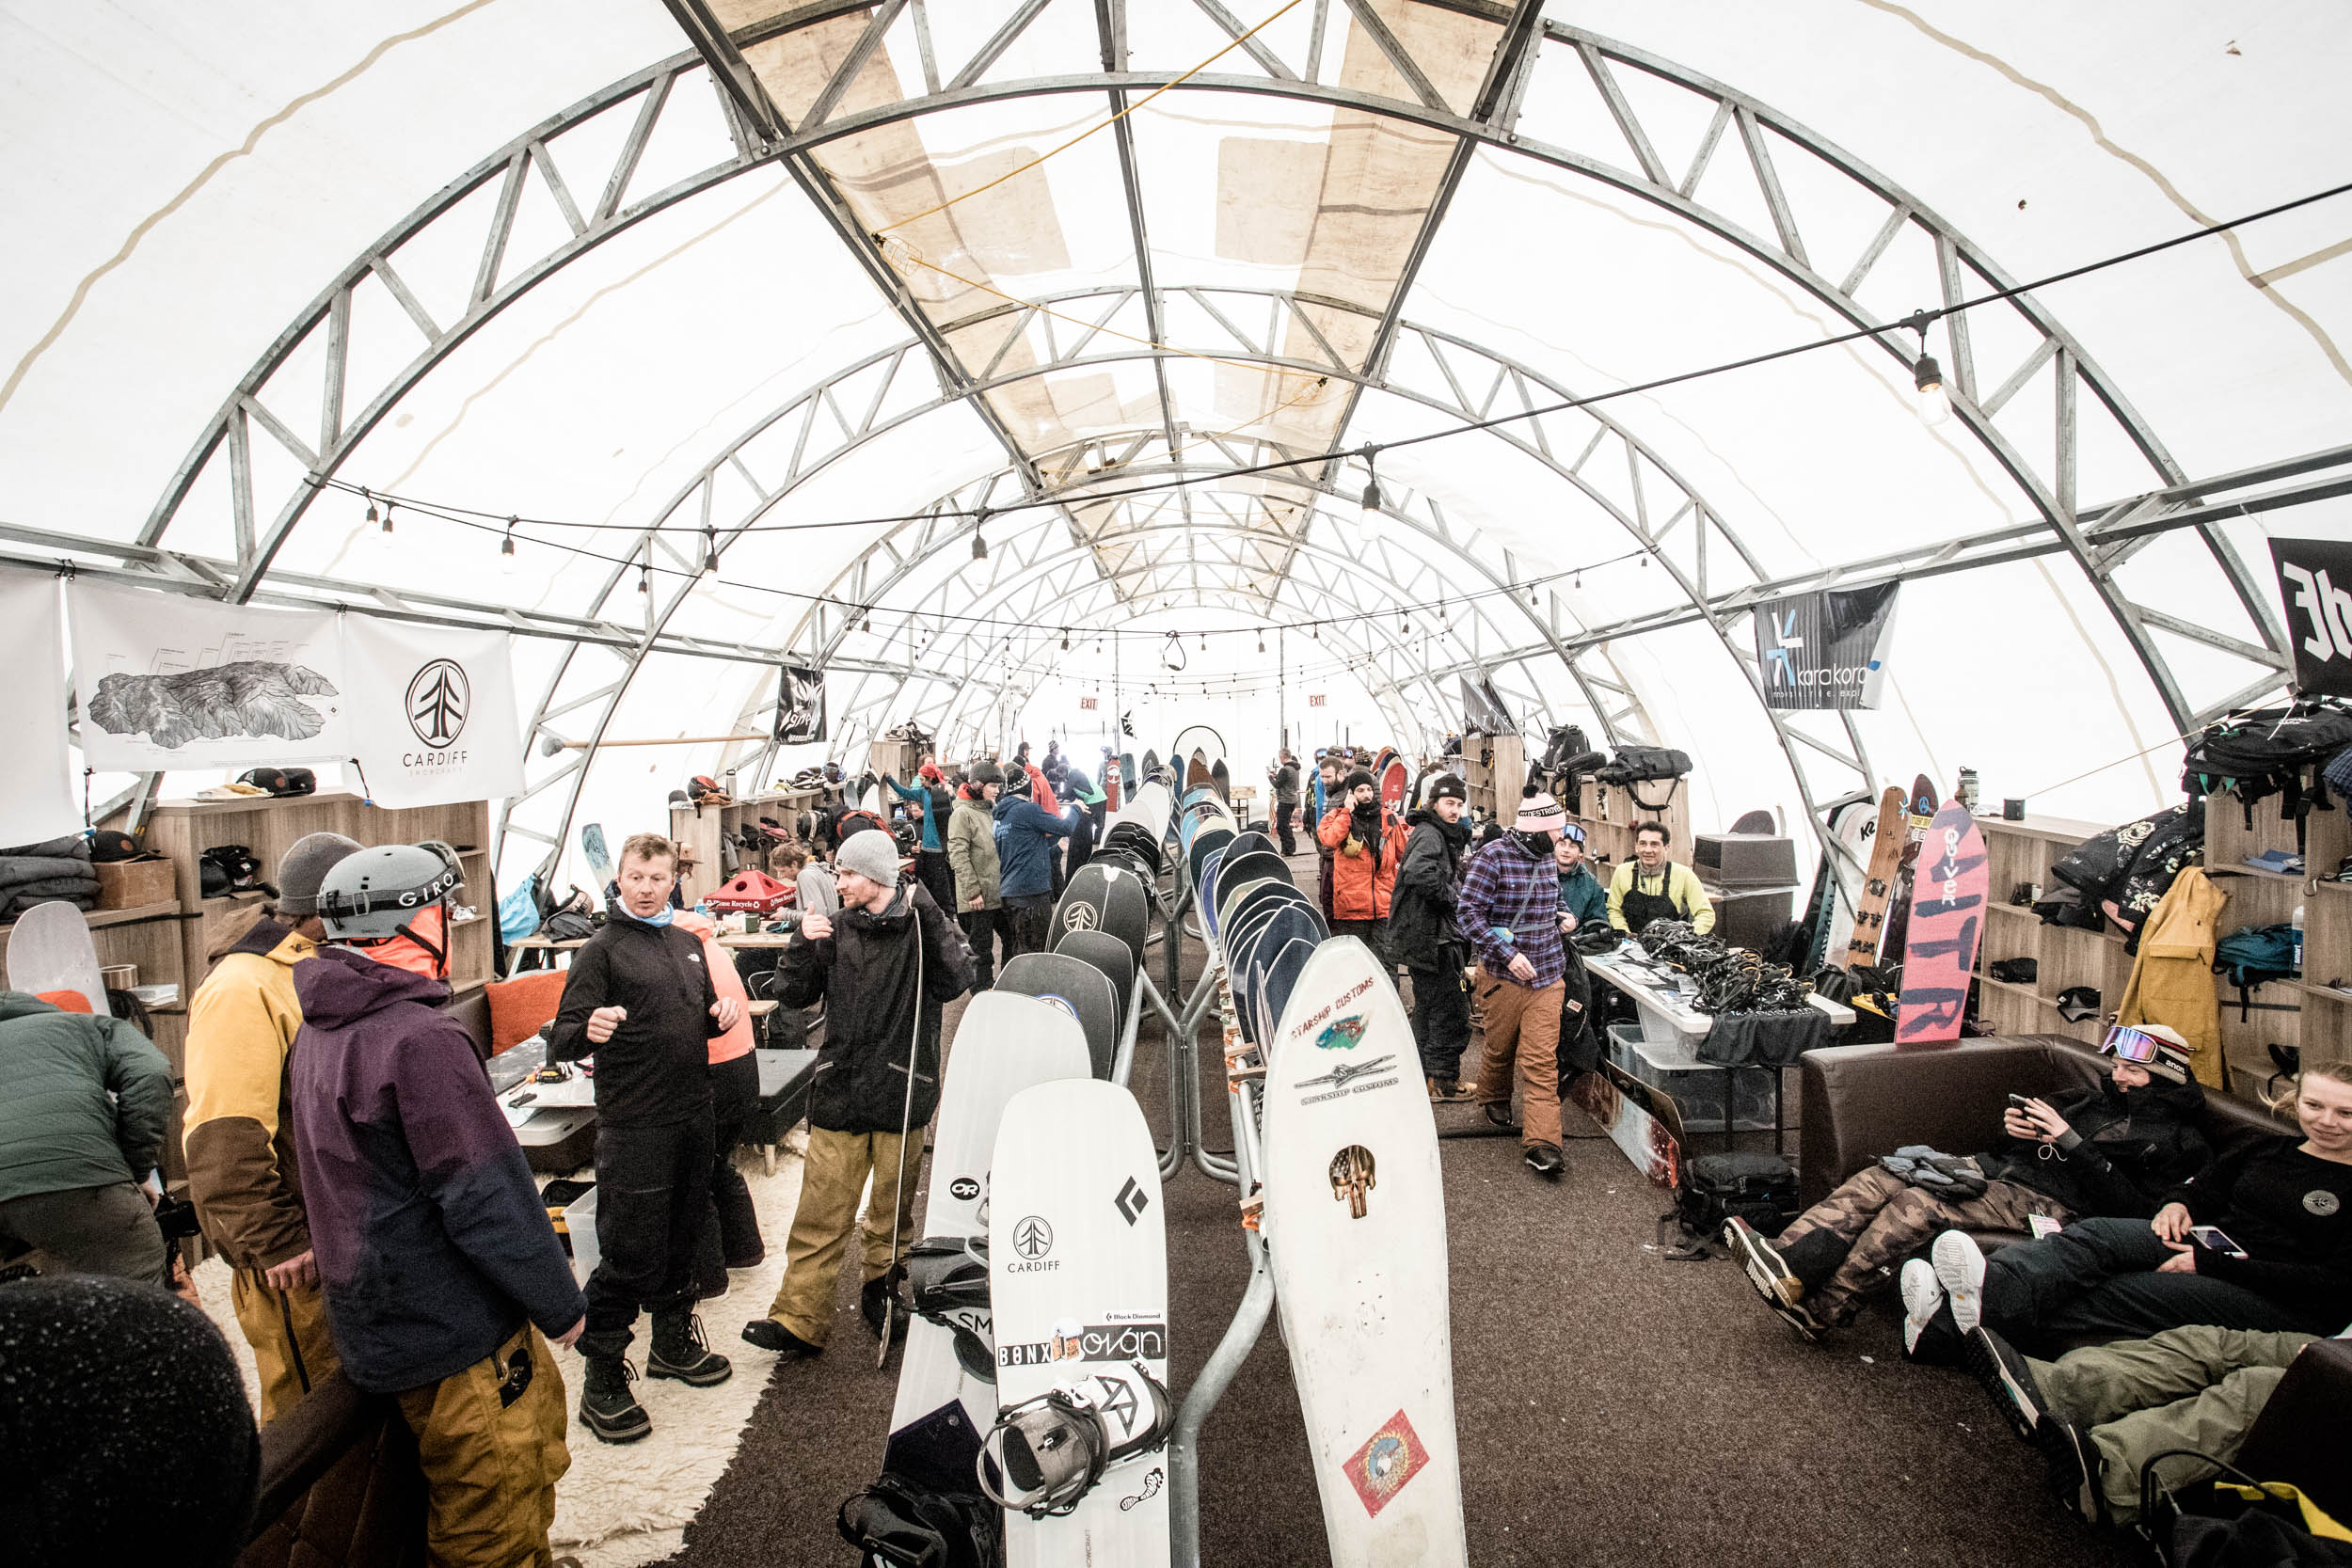 Hundreds of progressive board designs line the racks in the Shaper Summit tent for testers to choose from.. Click to view image.